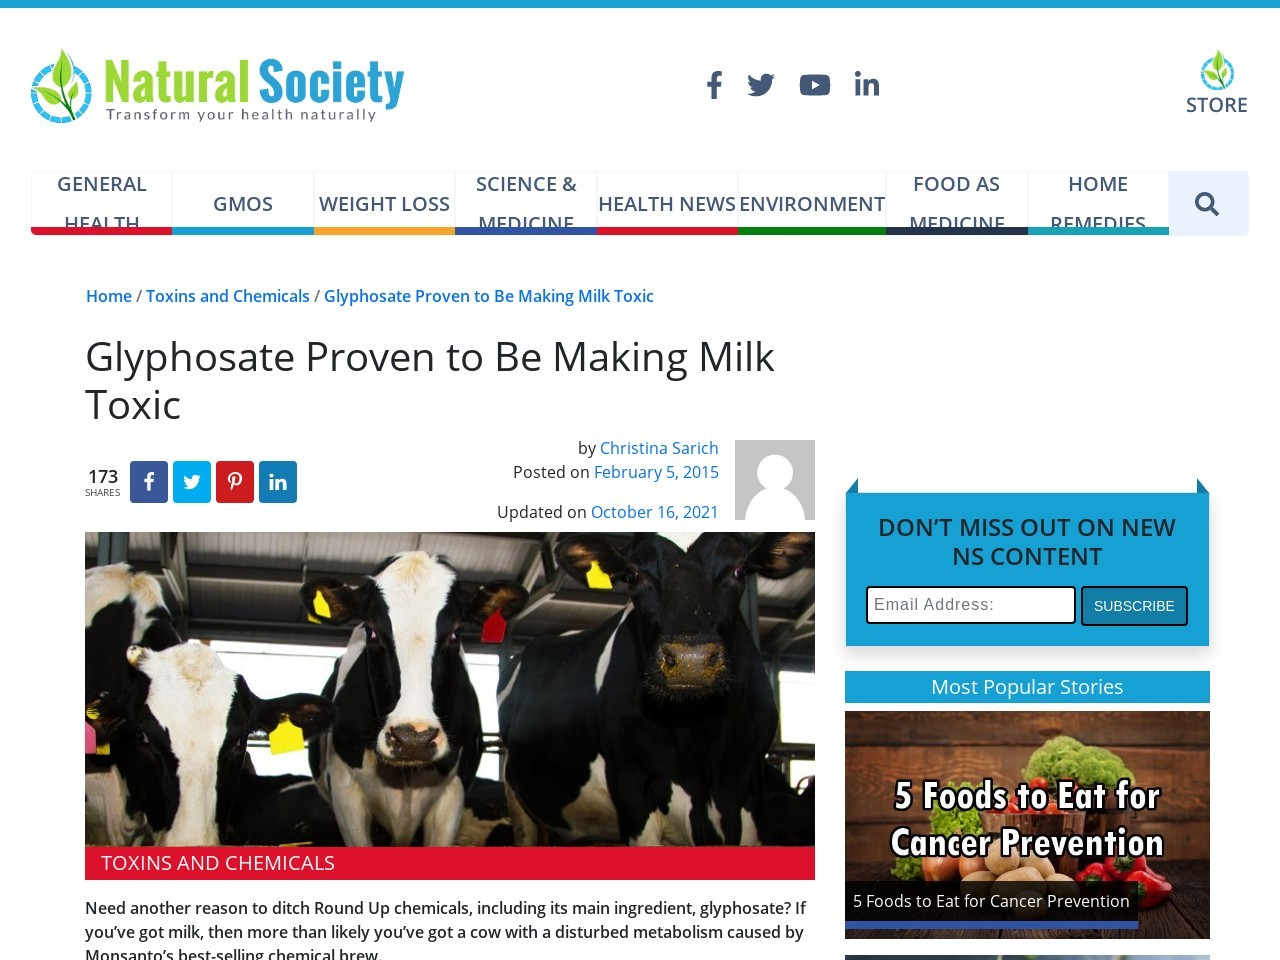 Glyphosate Proven to Be Making Milk Toxic